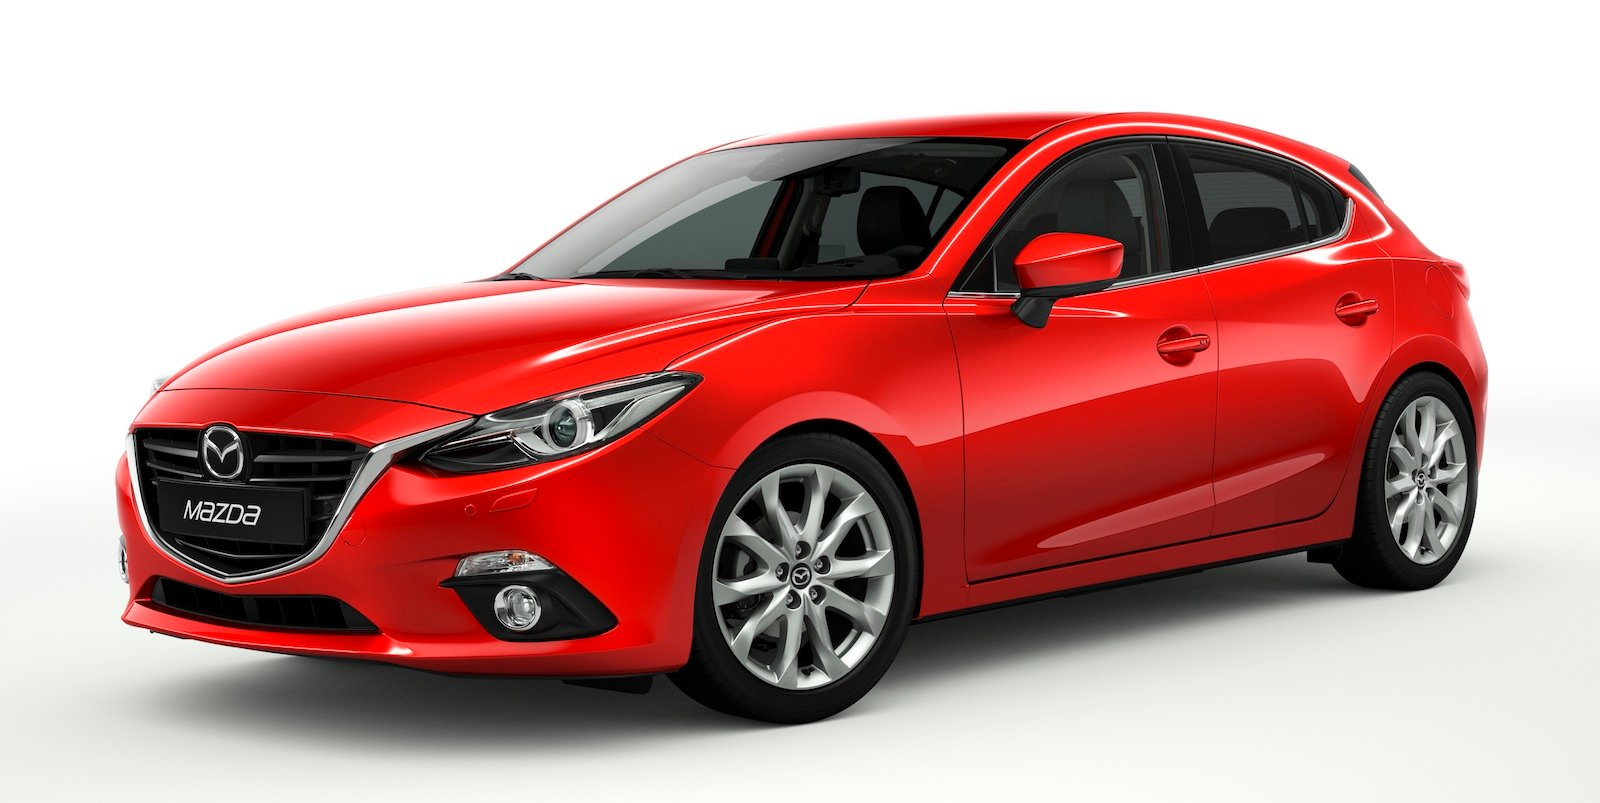 mazda 3 new small car won 39 t join sub 20k price war photos caradvice. Black Bedroom Furniture Sets. Home Design Ideas